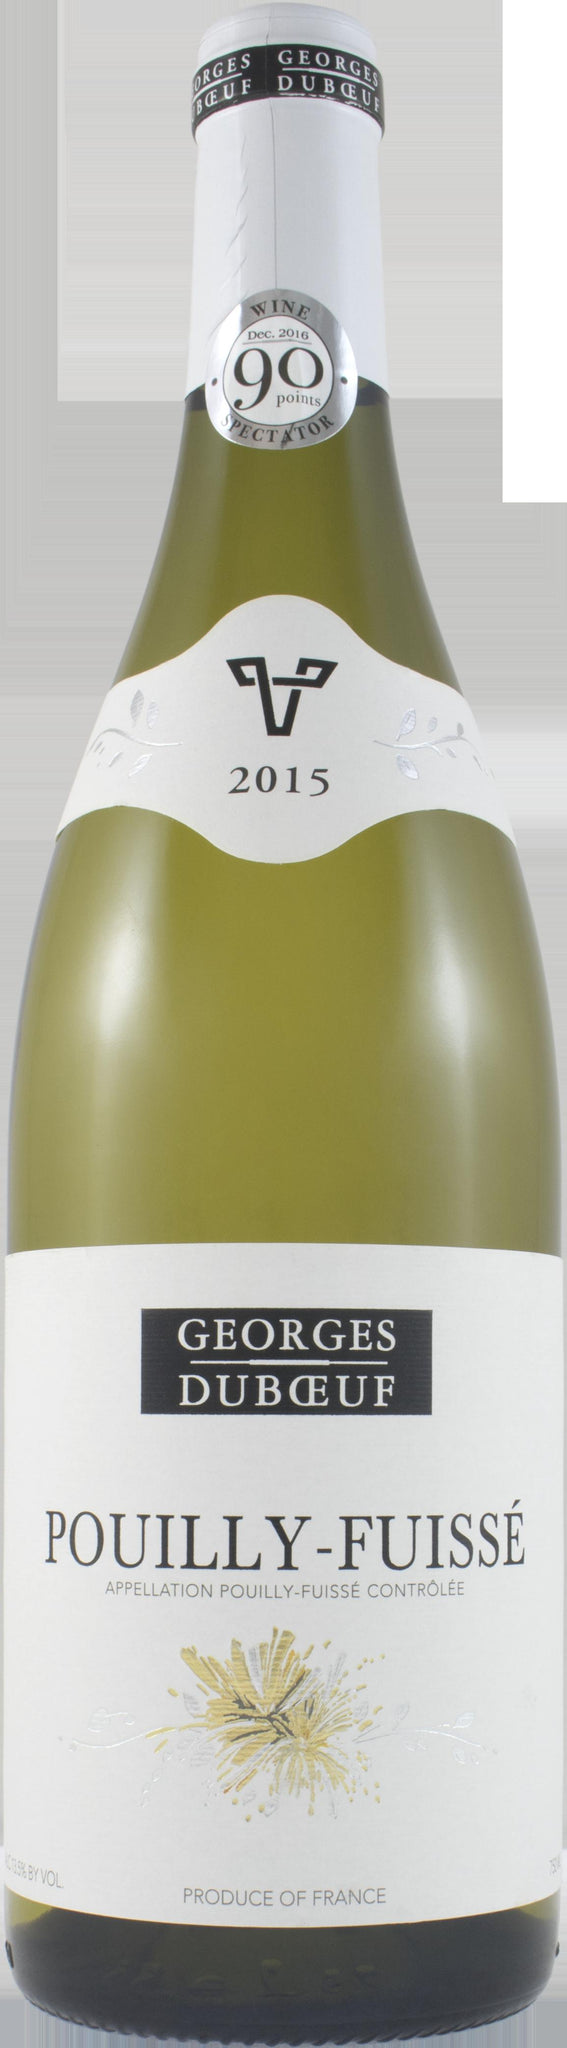 stl>Pouilly Fuisse George Dubeouf - 750ml